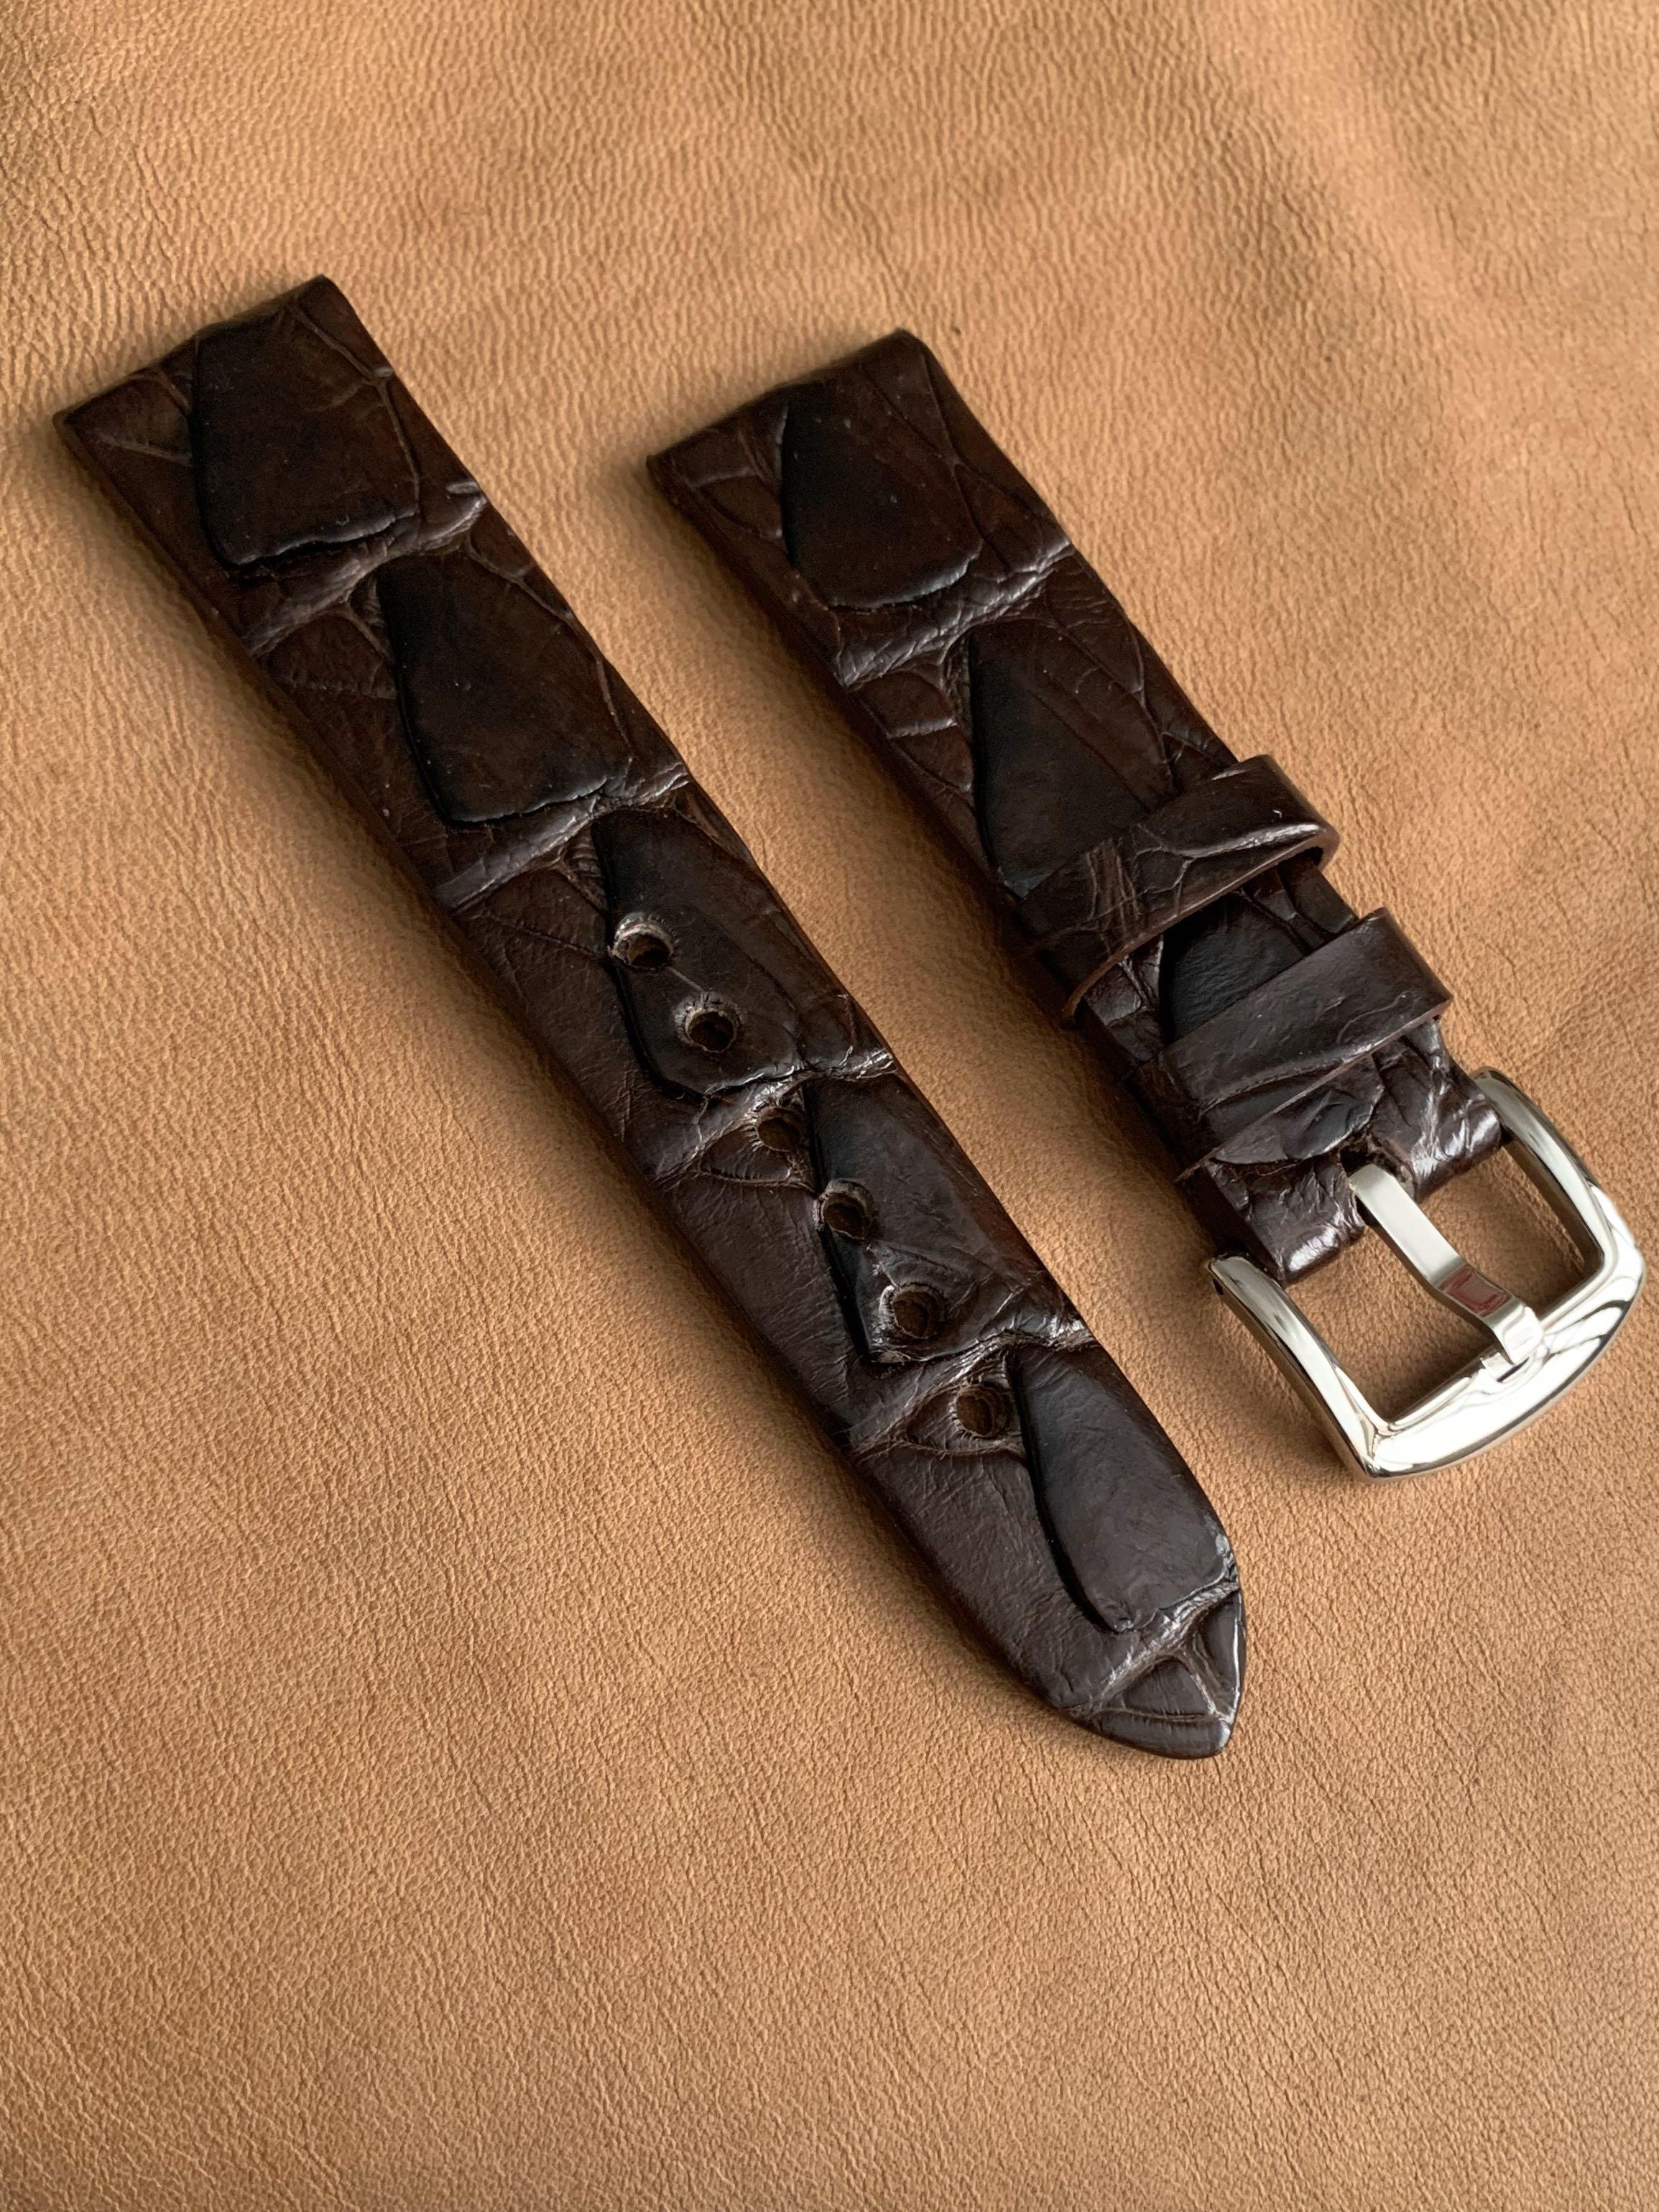 """22mm/20mm Pecan Brown """"Dorsal Fin"""" Crocodile Alligator scales  Watch Strap 22mm@lug/20mm@buckle (only 1 of, once sold no more🙏🏻👍🏻) 22mm/20mm     Standard length: L-120mm,S-75mm"""